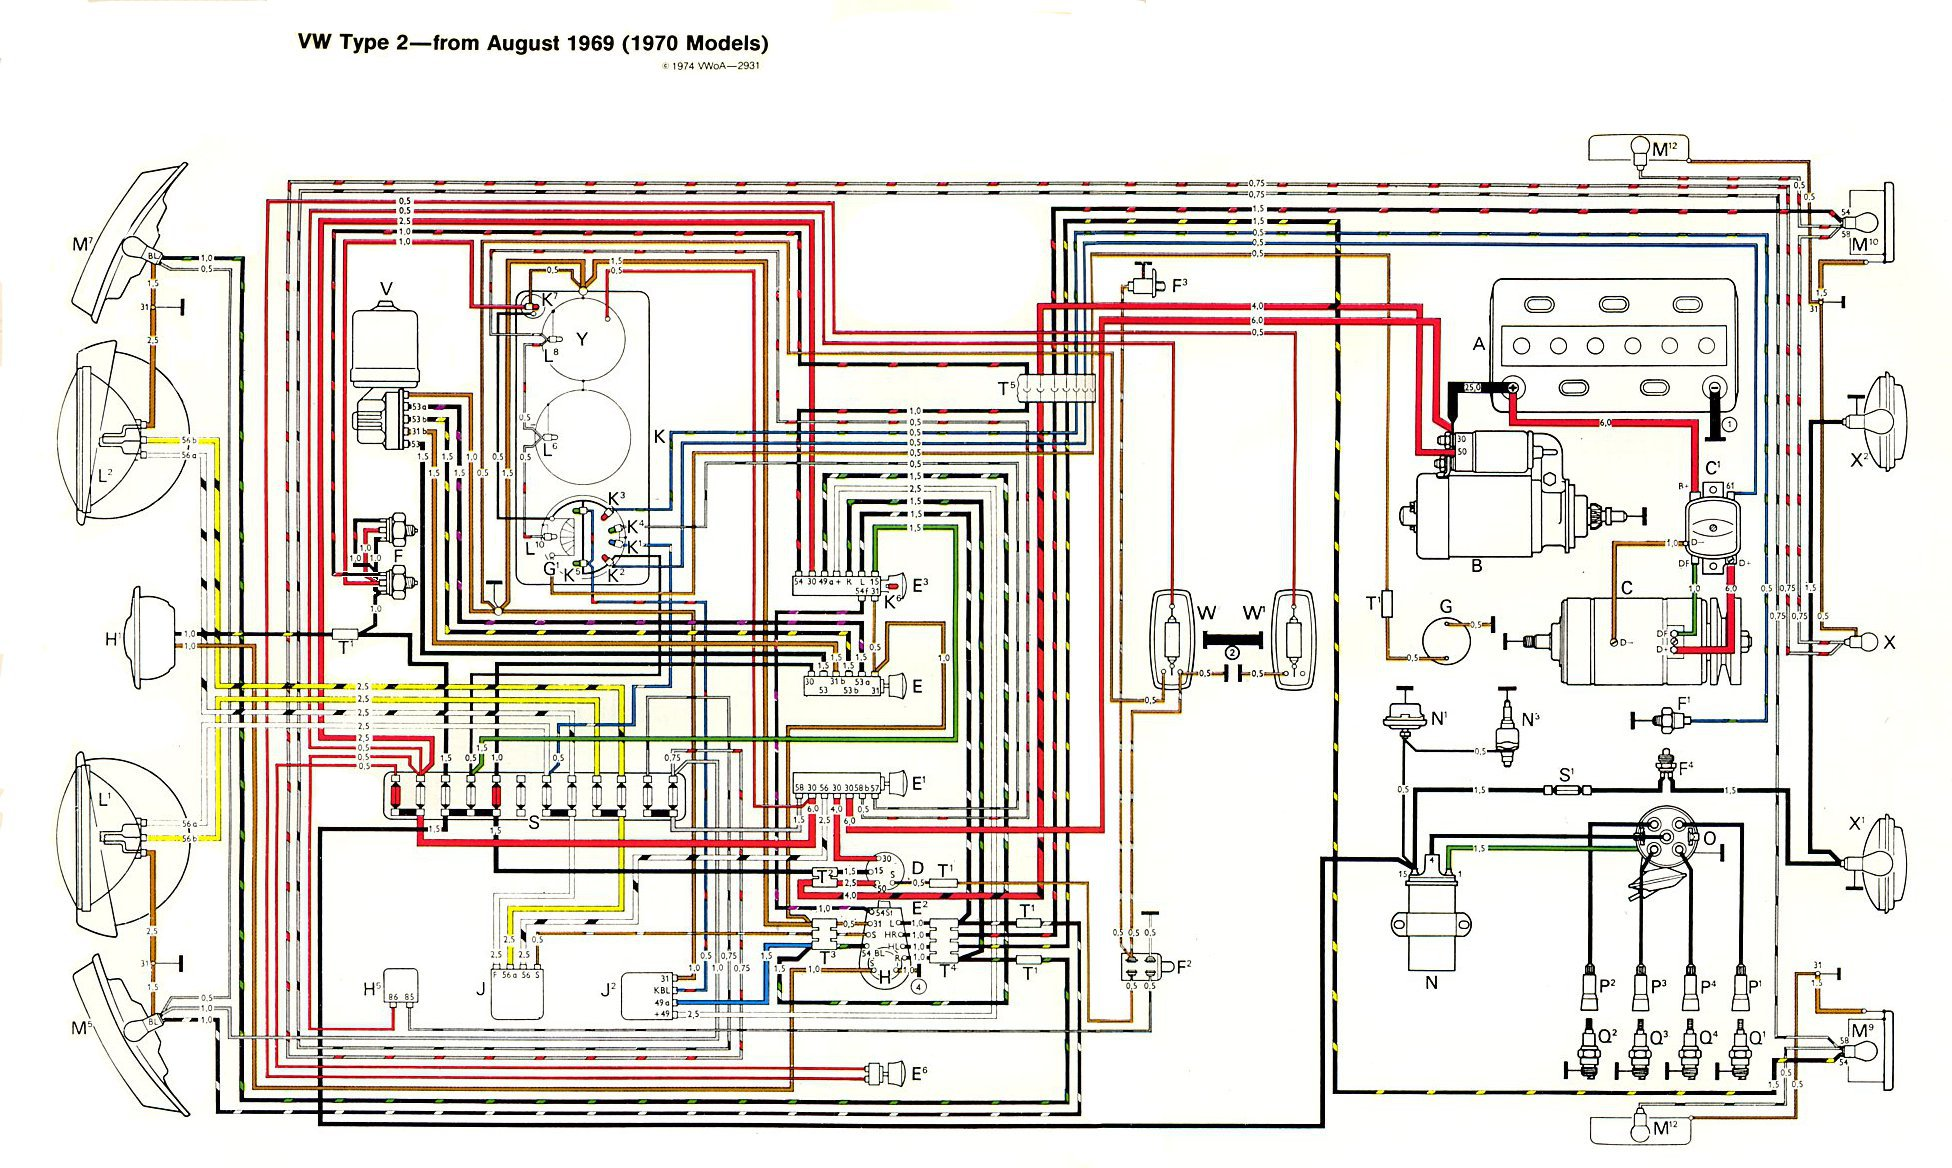 baybus_70 vw mk1 wiring diagram 1971 vw beetle wiring diagram \u2022 wiring 1970 vw bus fuse box at gsmx.co